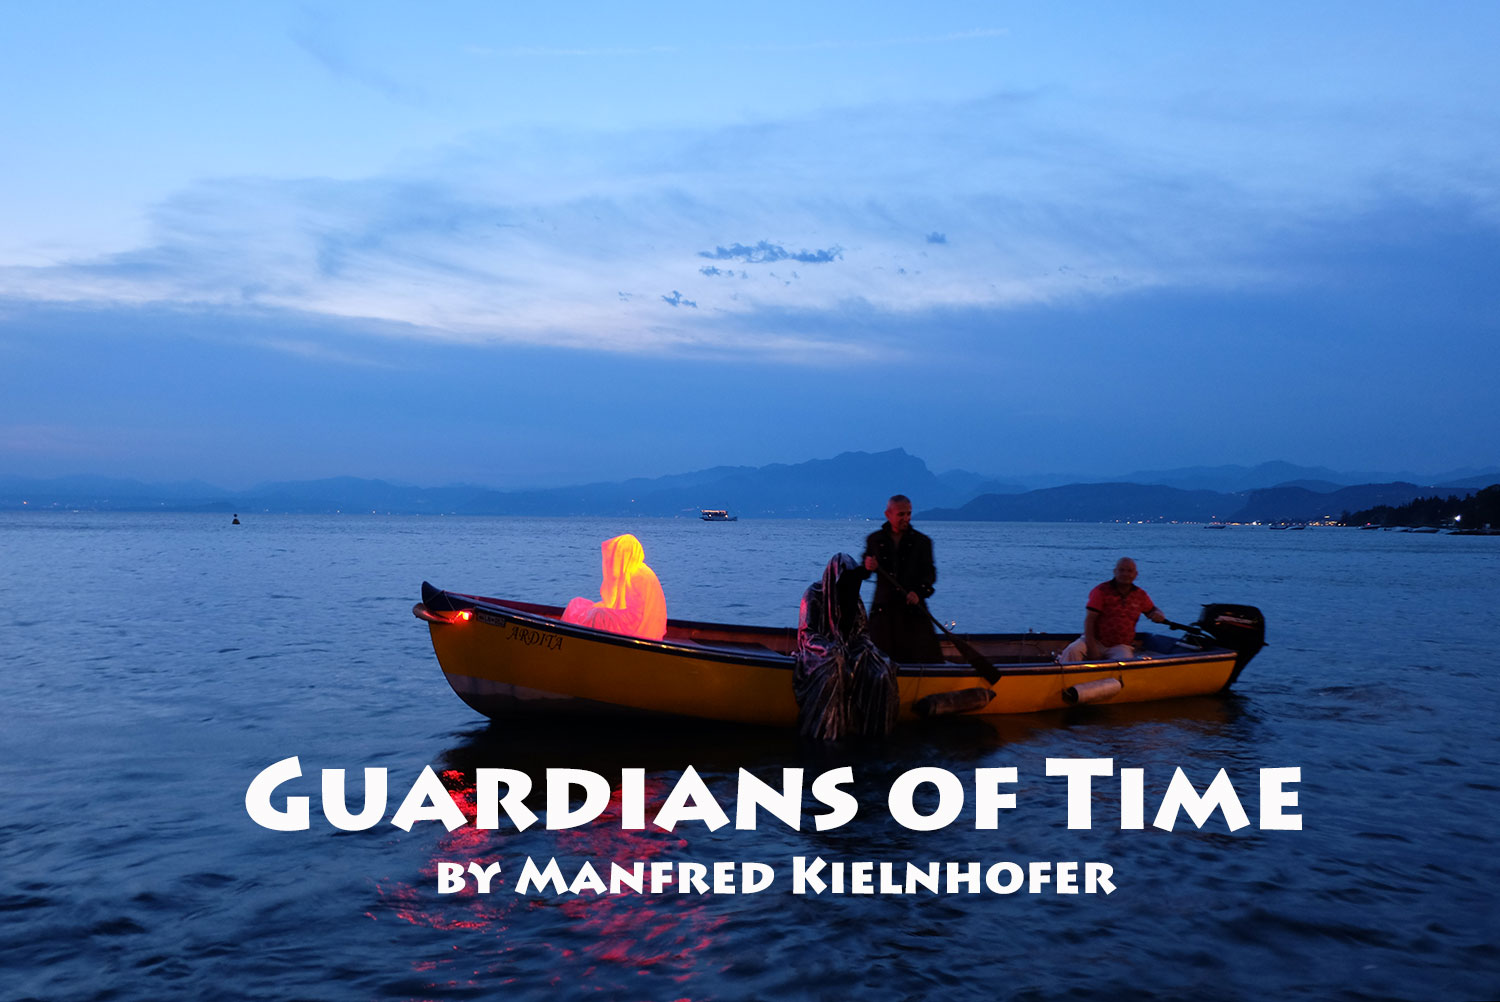 lazise-largo-de-guarda-italia--kouba-designkooperative-austria-guardians-of-time-manfred-kili-kielnhofer-contemporary-art-design-arts-arte-sculpture-theater-foto-film-performnce-avalon-ferryman-3835-